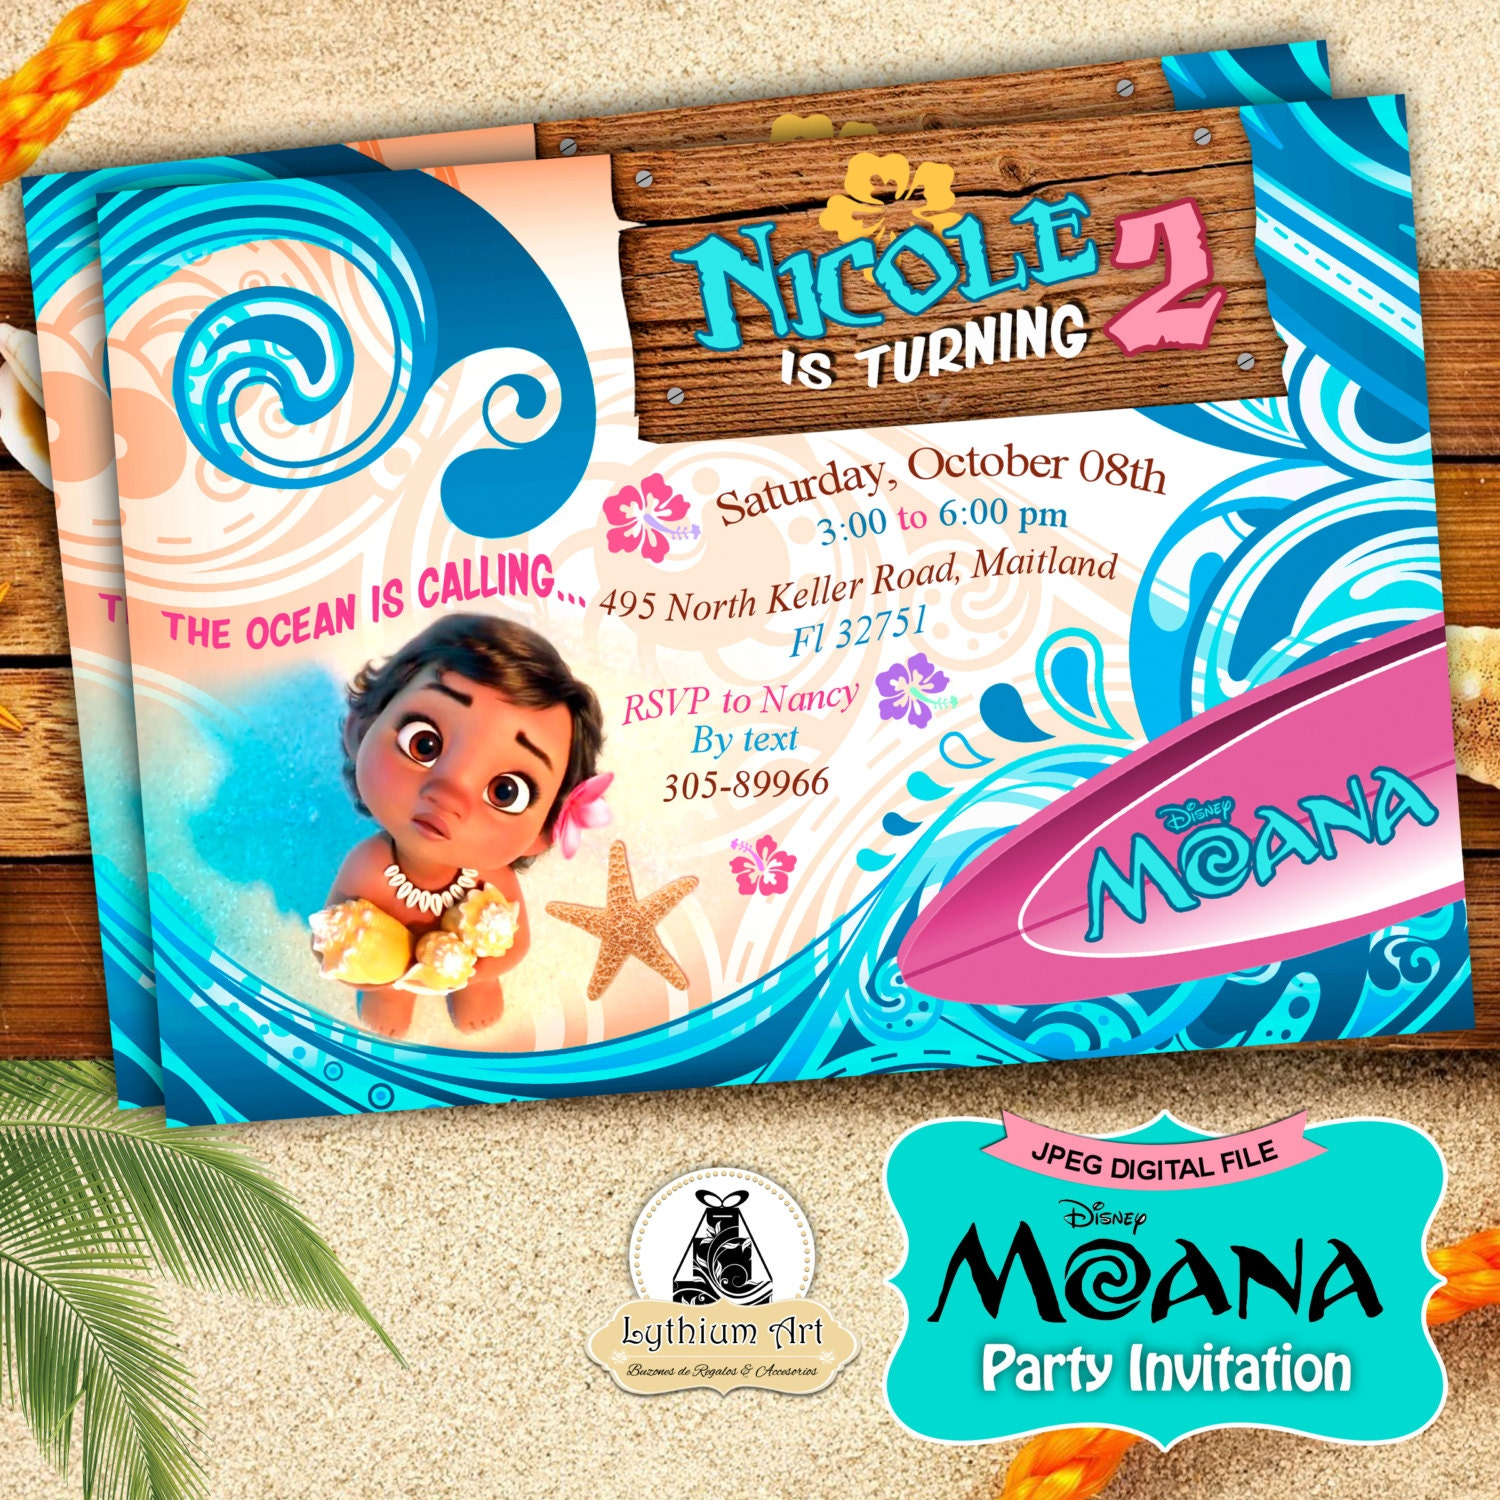 princess invitations moana invitation moana party invitation moana birthday party disney moana moana printables custom invitation disney princess